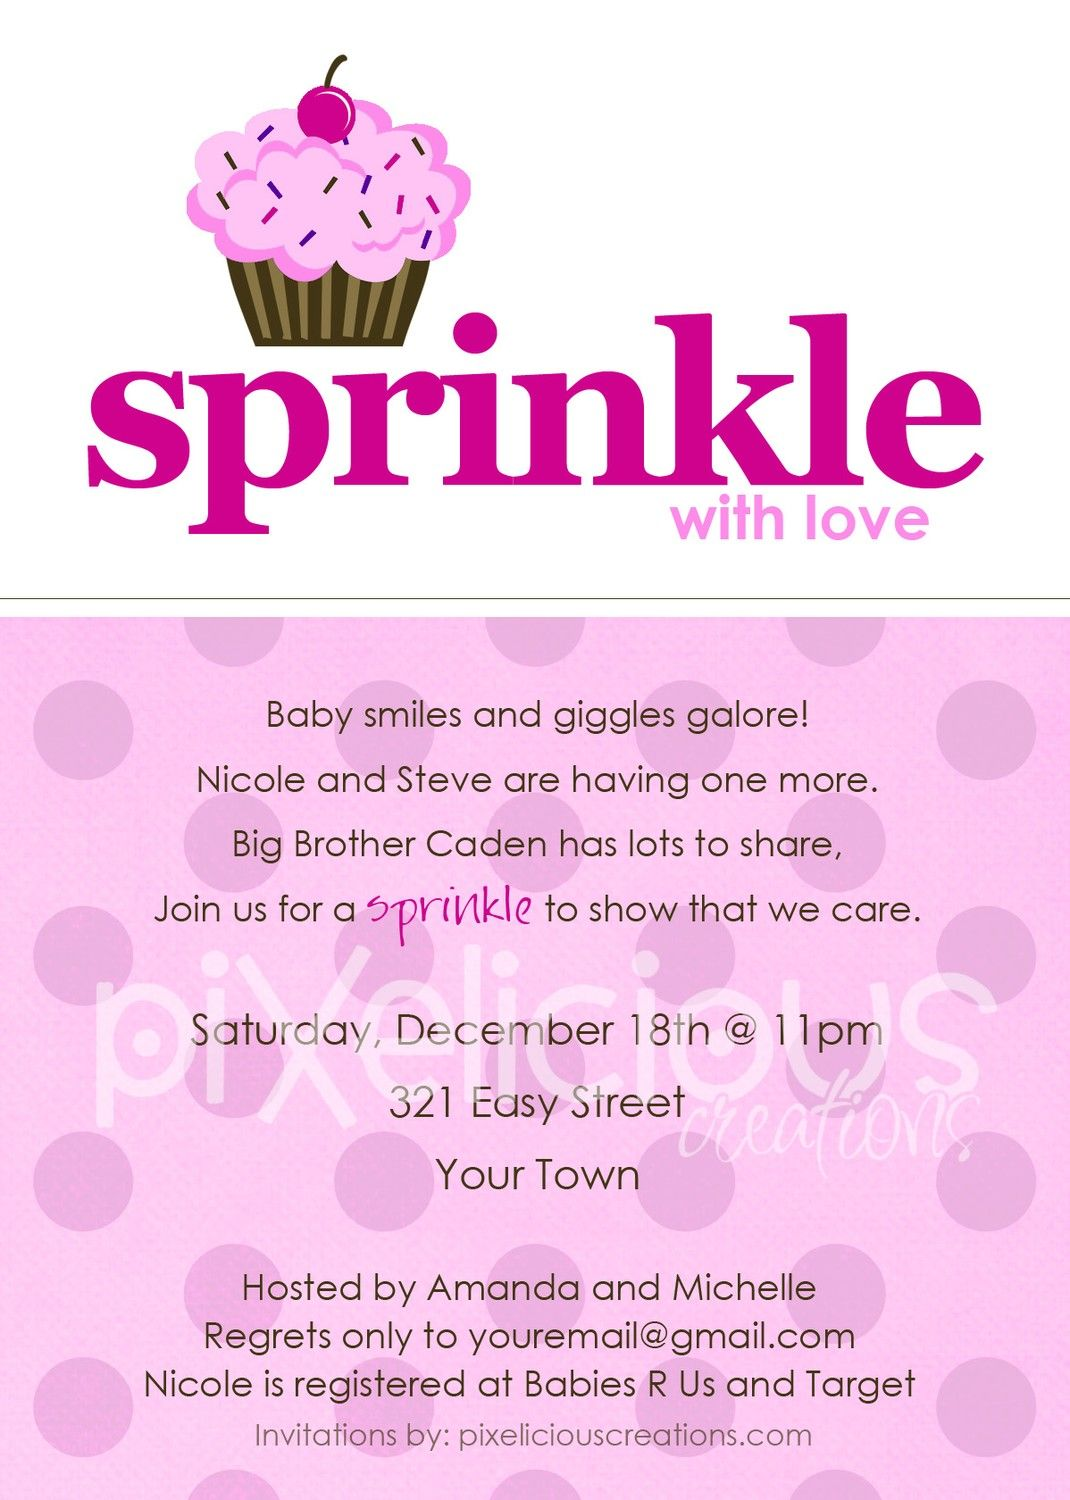 sprinkle custom baby shower invitation girl or boy digital baby shower invitation wording sprinkle custom baby shower invitation boy and girl digital file